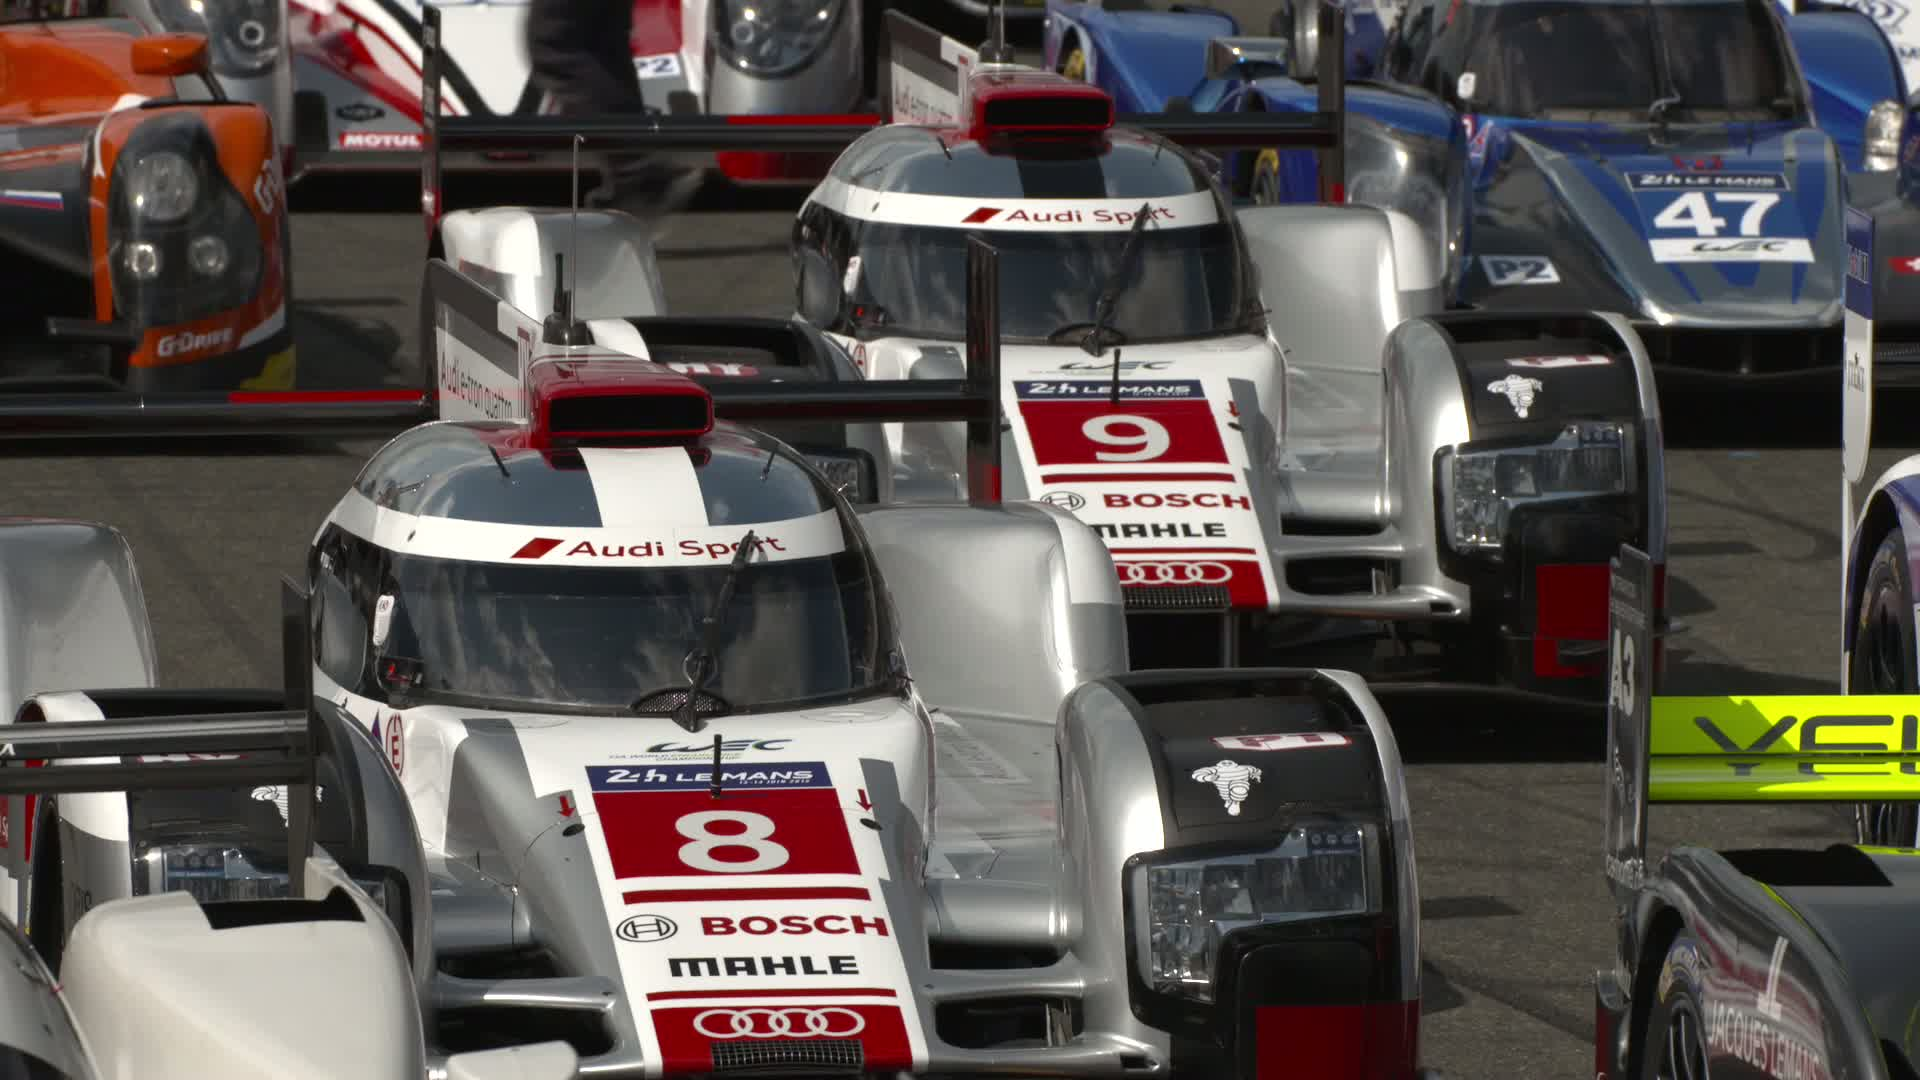 60 Seconds of Audi Sport 31/2015 - Le Mans Pre-Test Tag 1